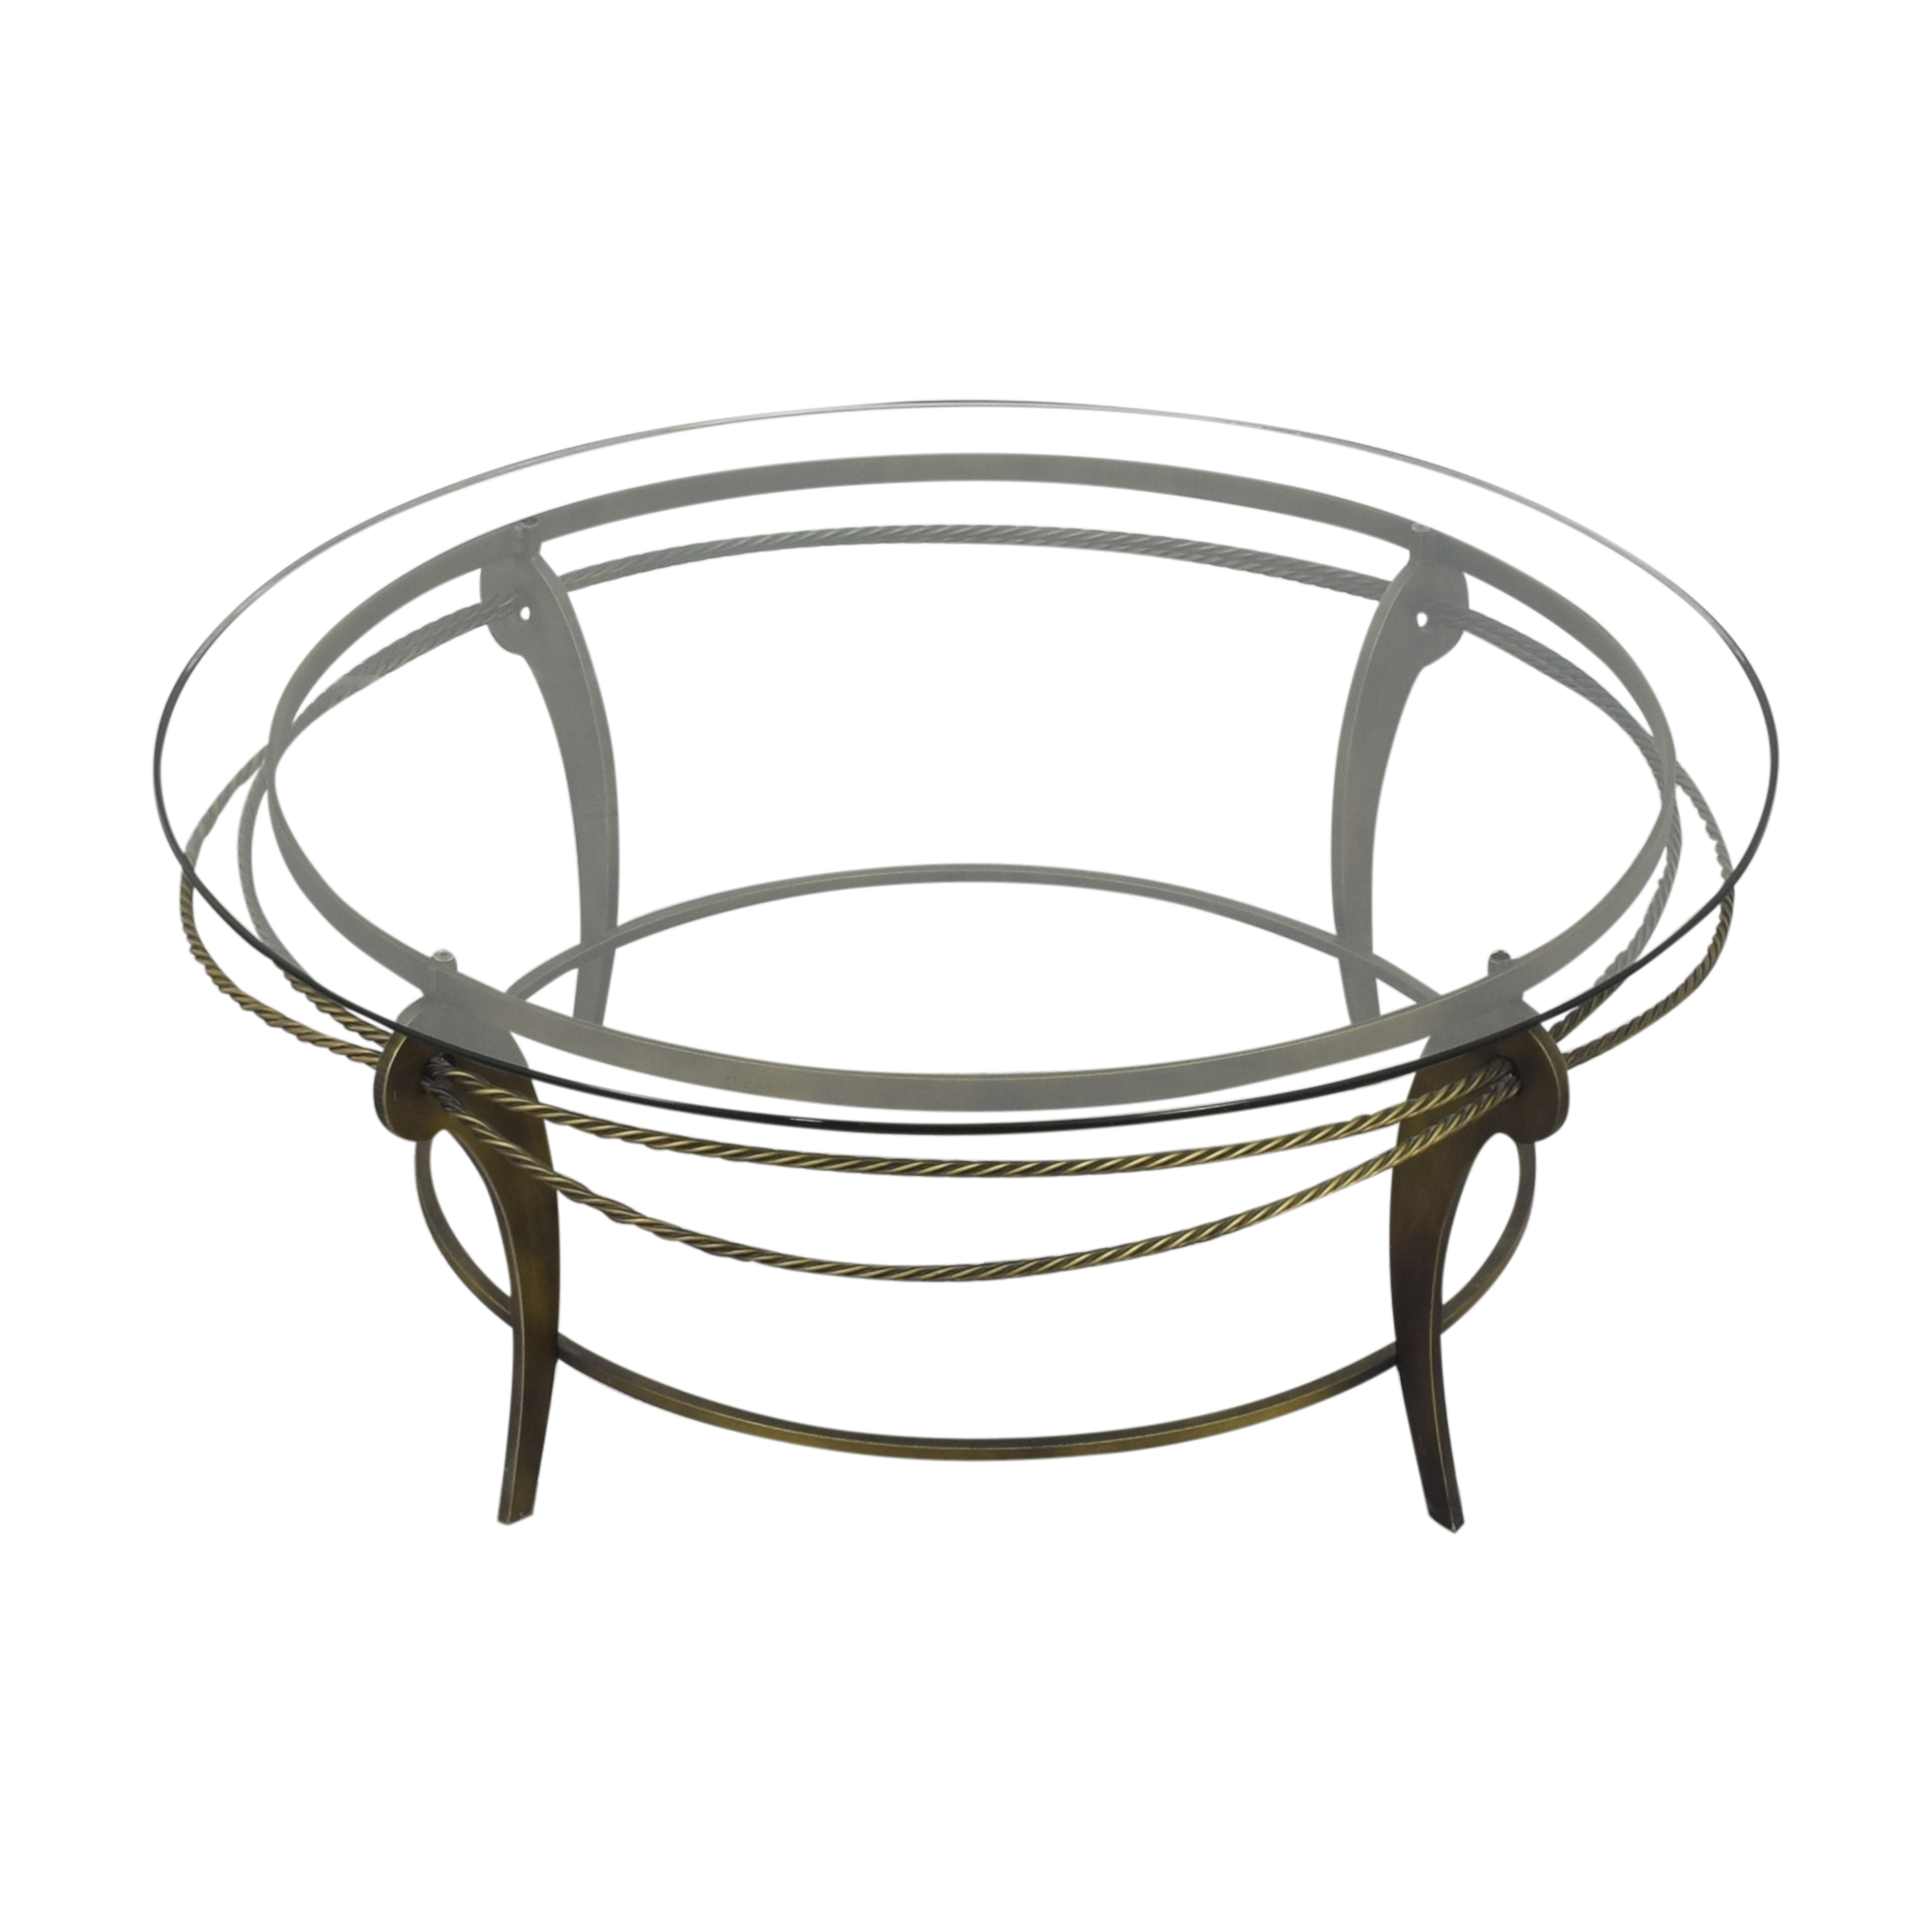 Ethan Allen Ethan Allen Round Glass and Metal Coffee Table Coffee Tables